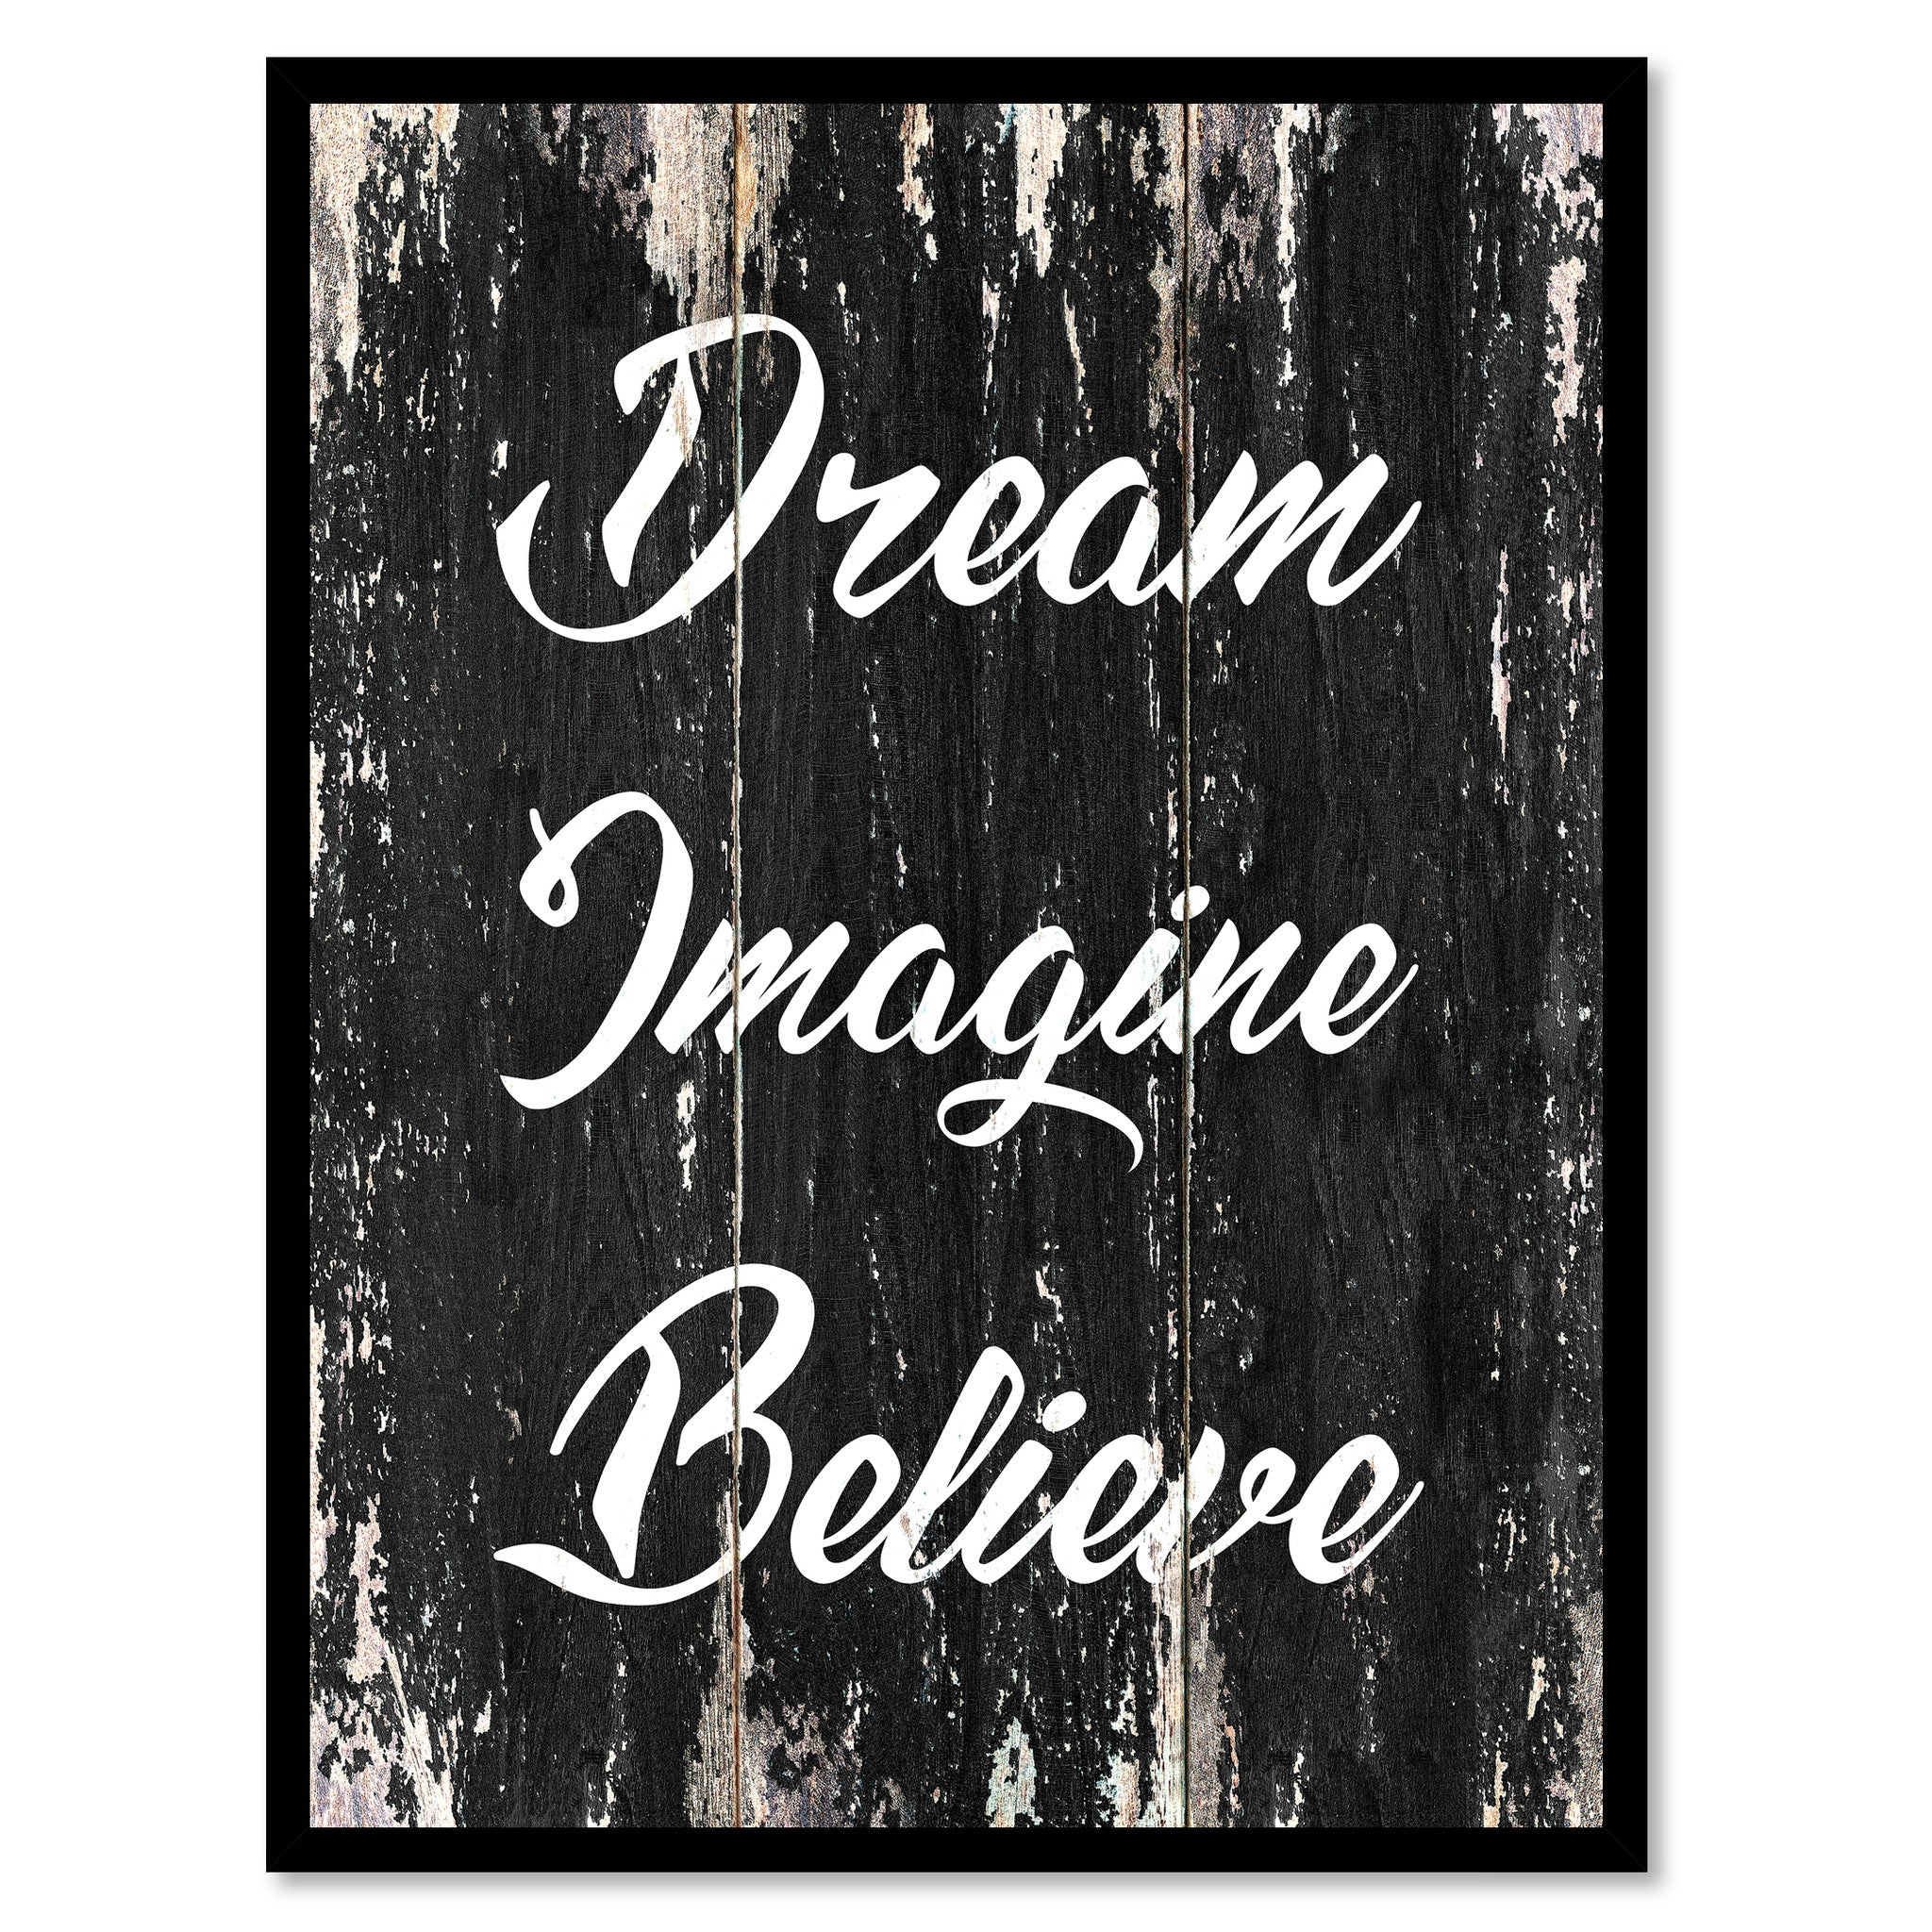 Dream imagine believe Motivational Quote Saying Canvas Print with Picture Frame Home Decor Wall Art